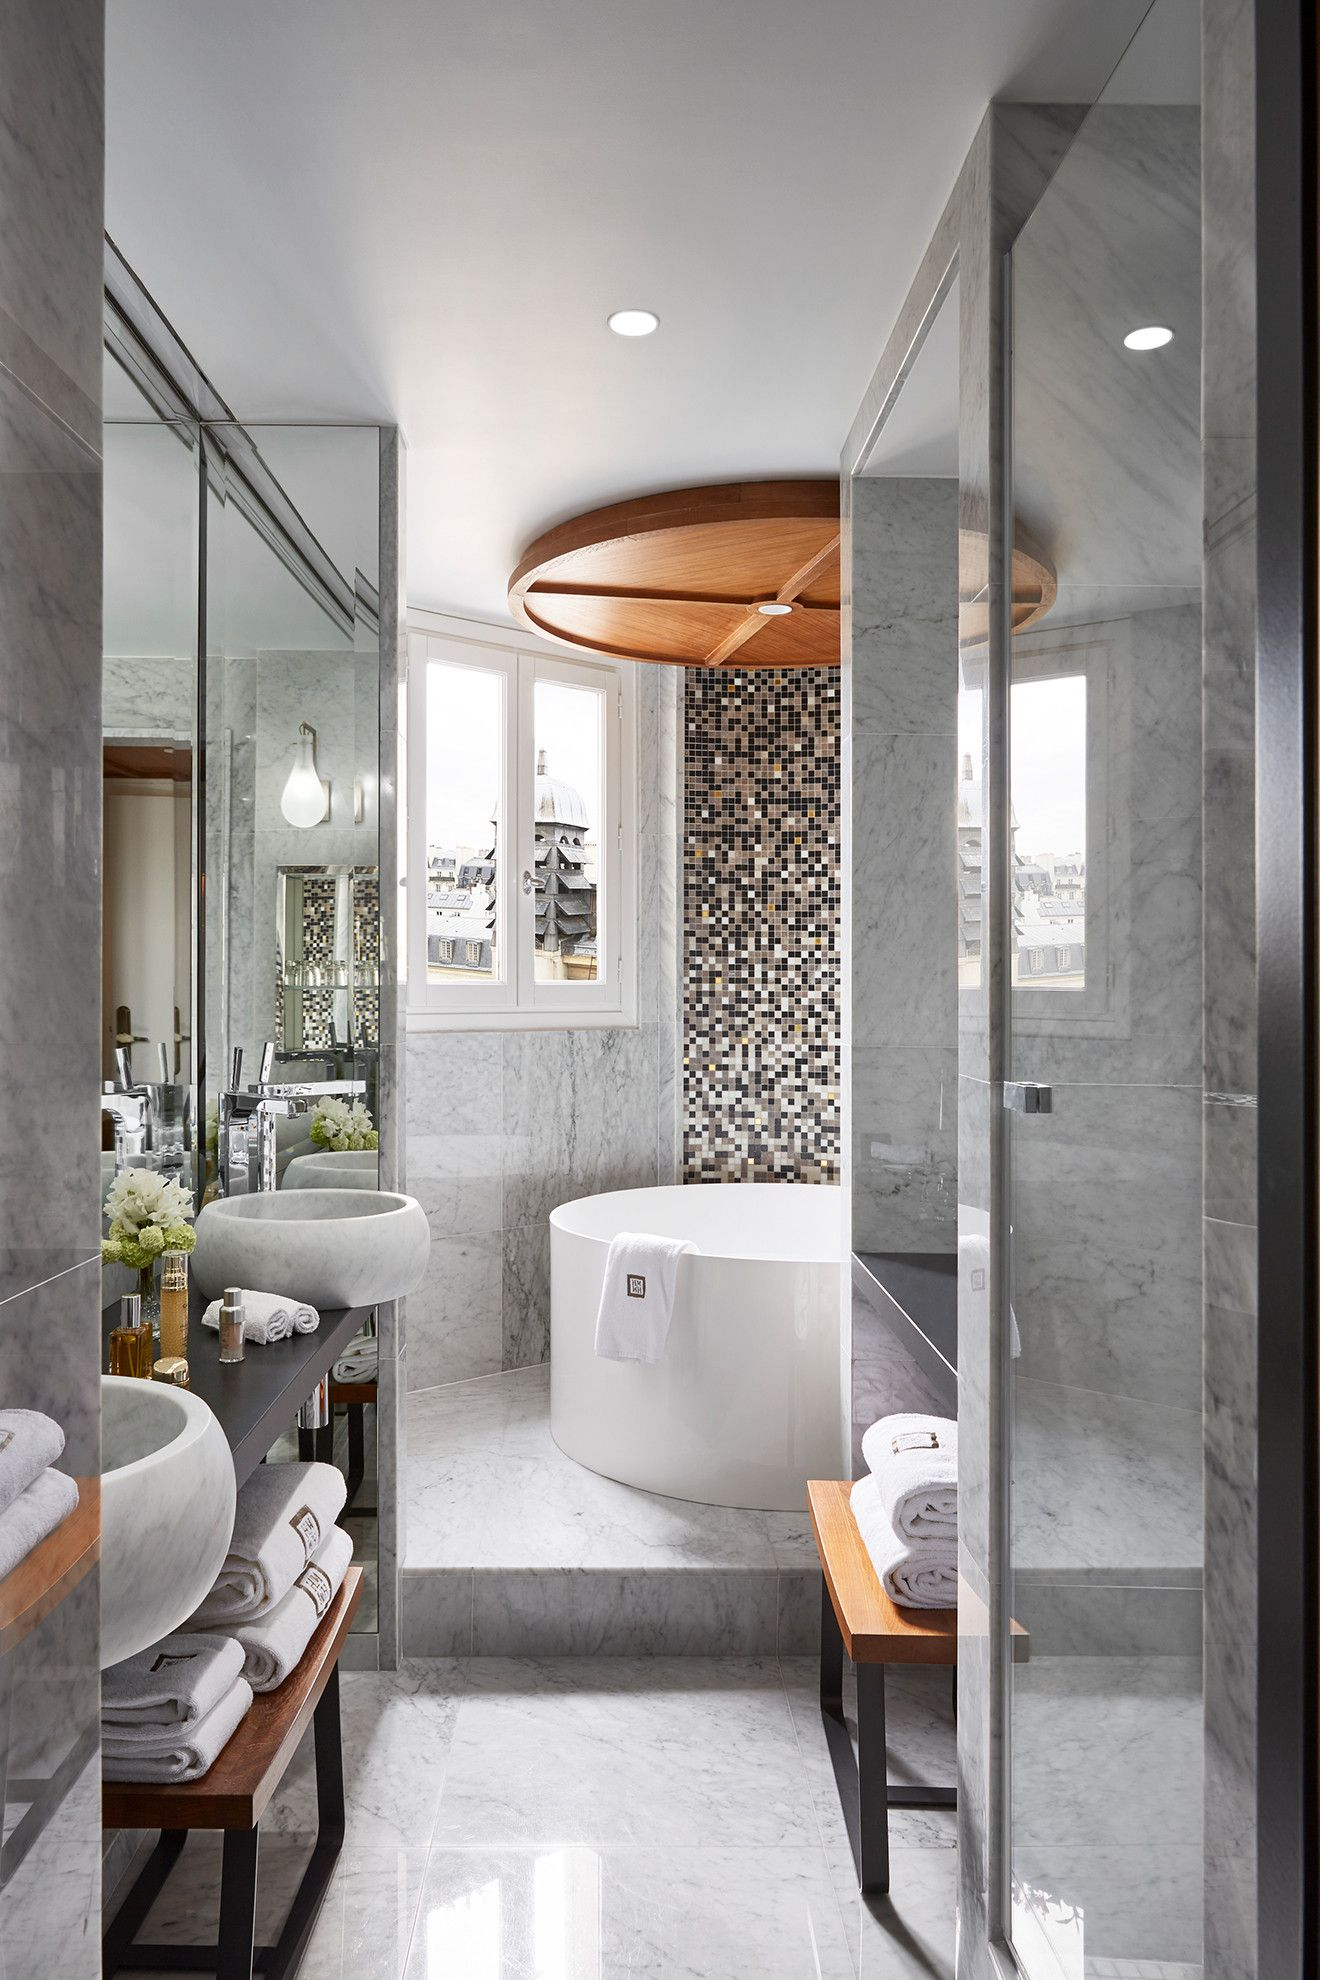 Hotel Montalembert, Paris, France | Bathroom design luxury ...